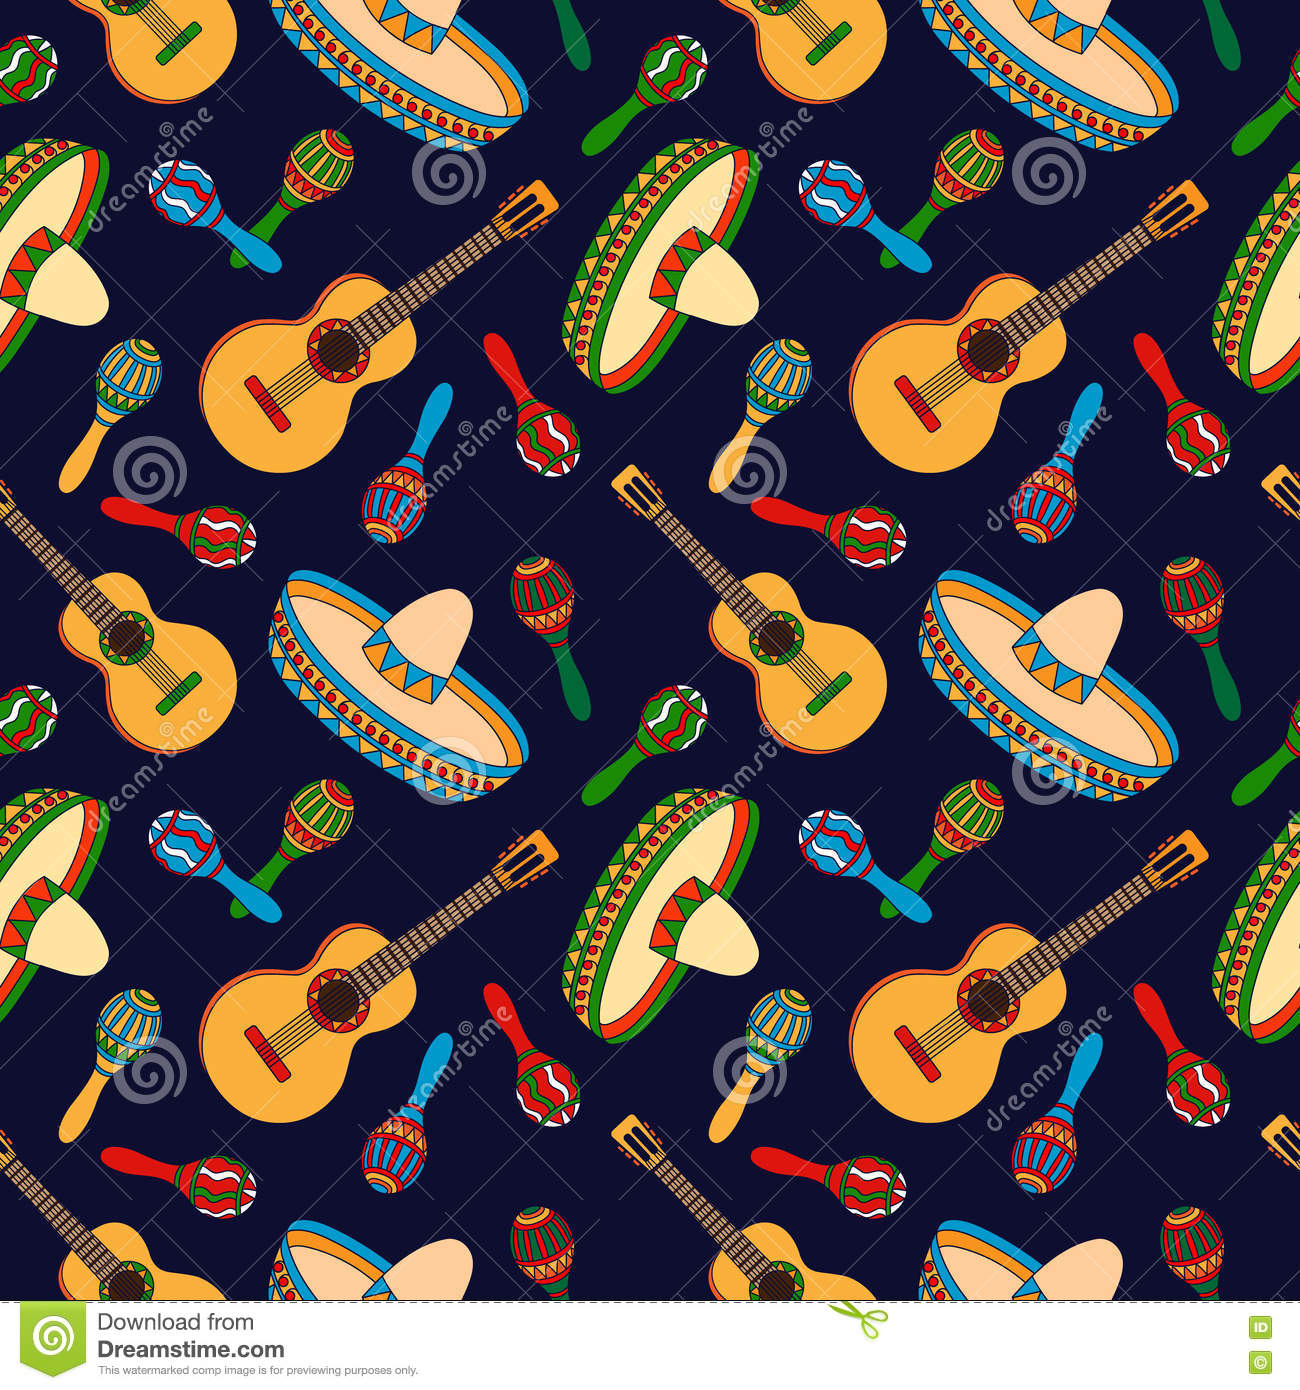 mexican hand drawn seamless pattern stock vector - illustration of